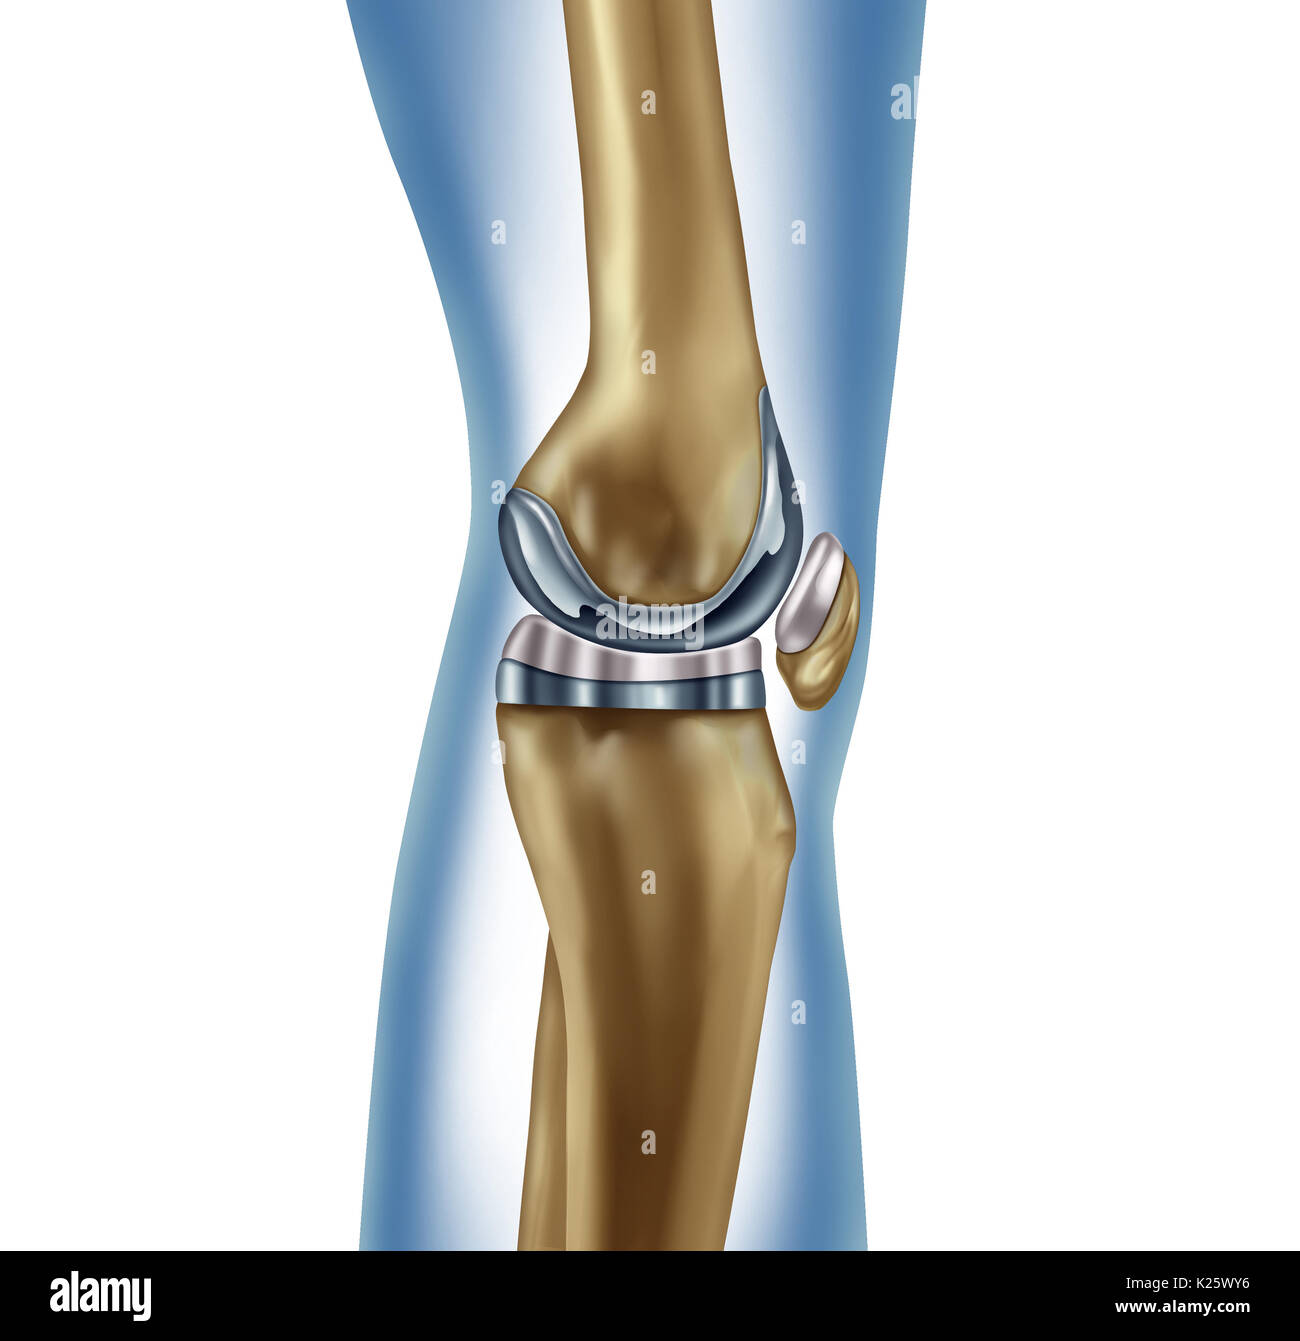 Replacement Knee Implant Medical Concept As A Human Leg Anatomy